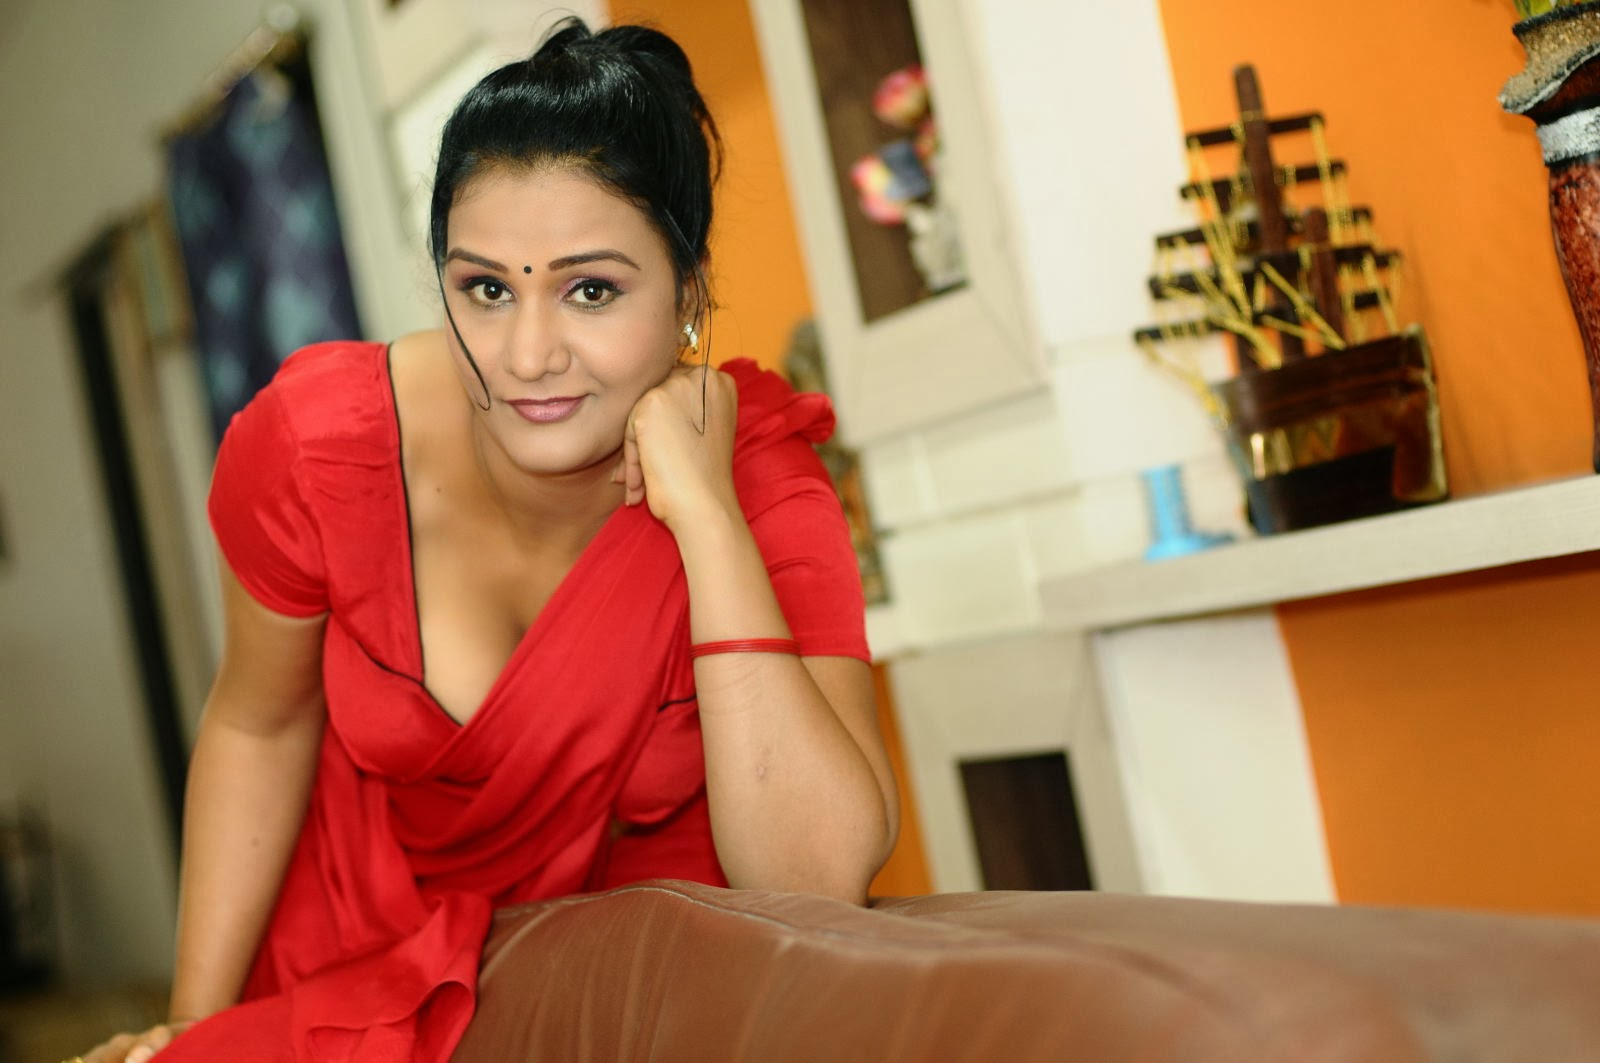 apoorva actress hot images